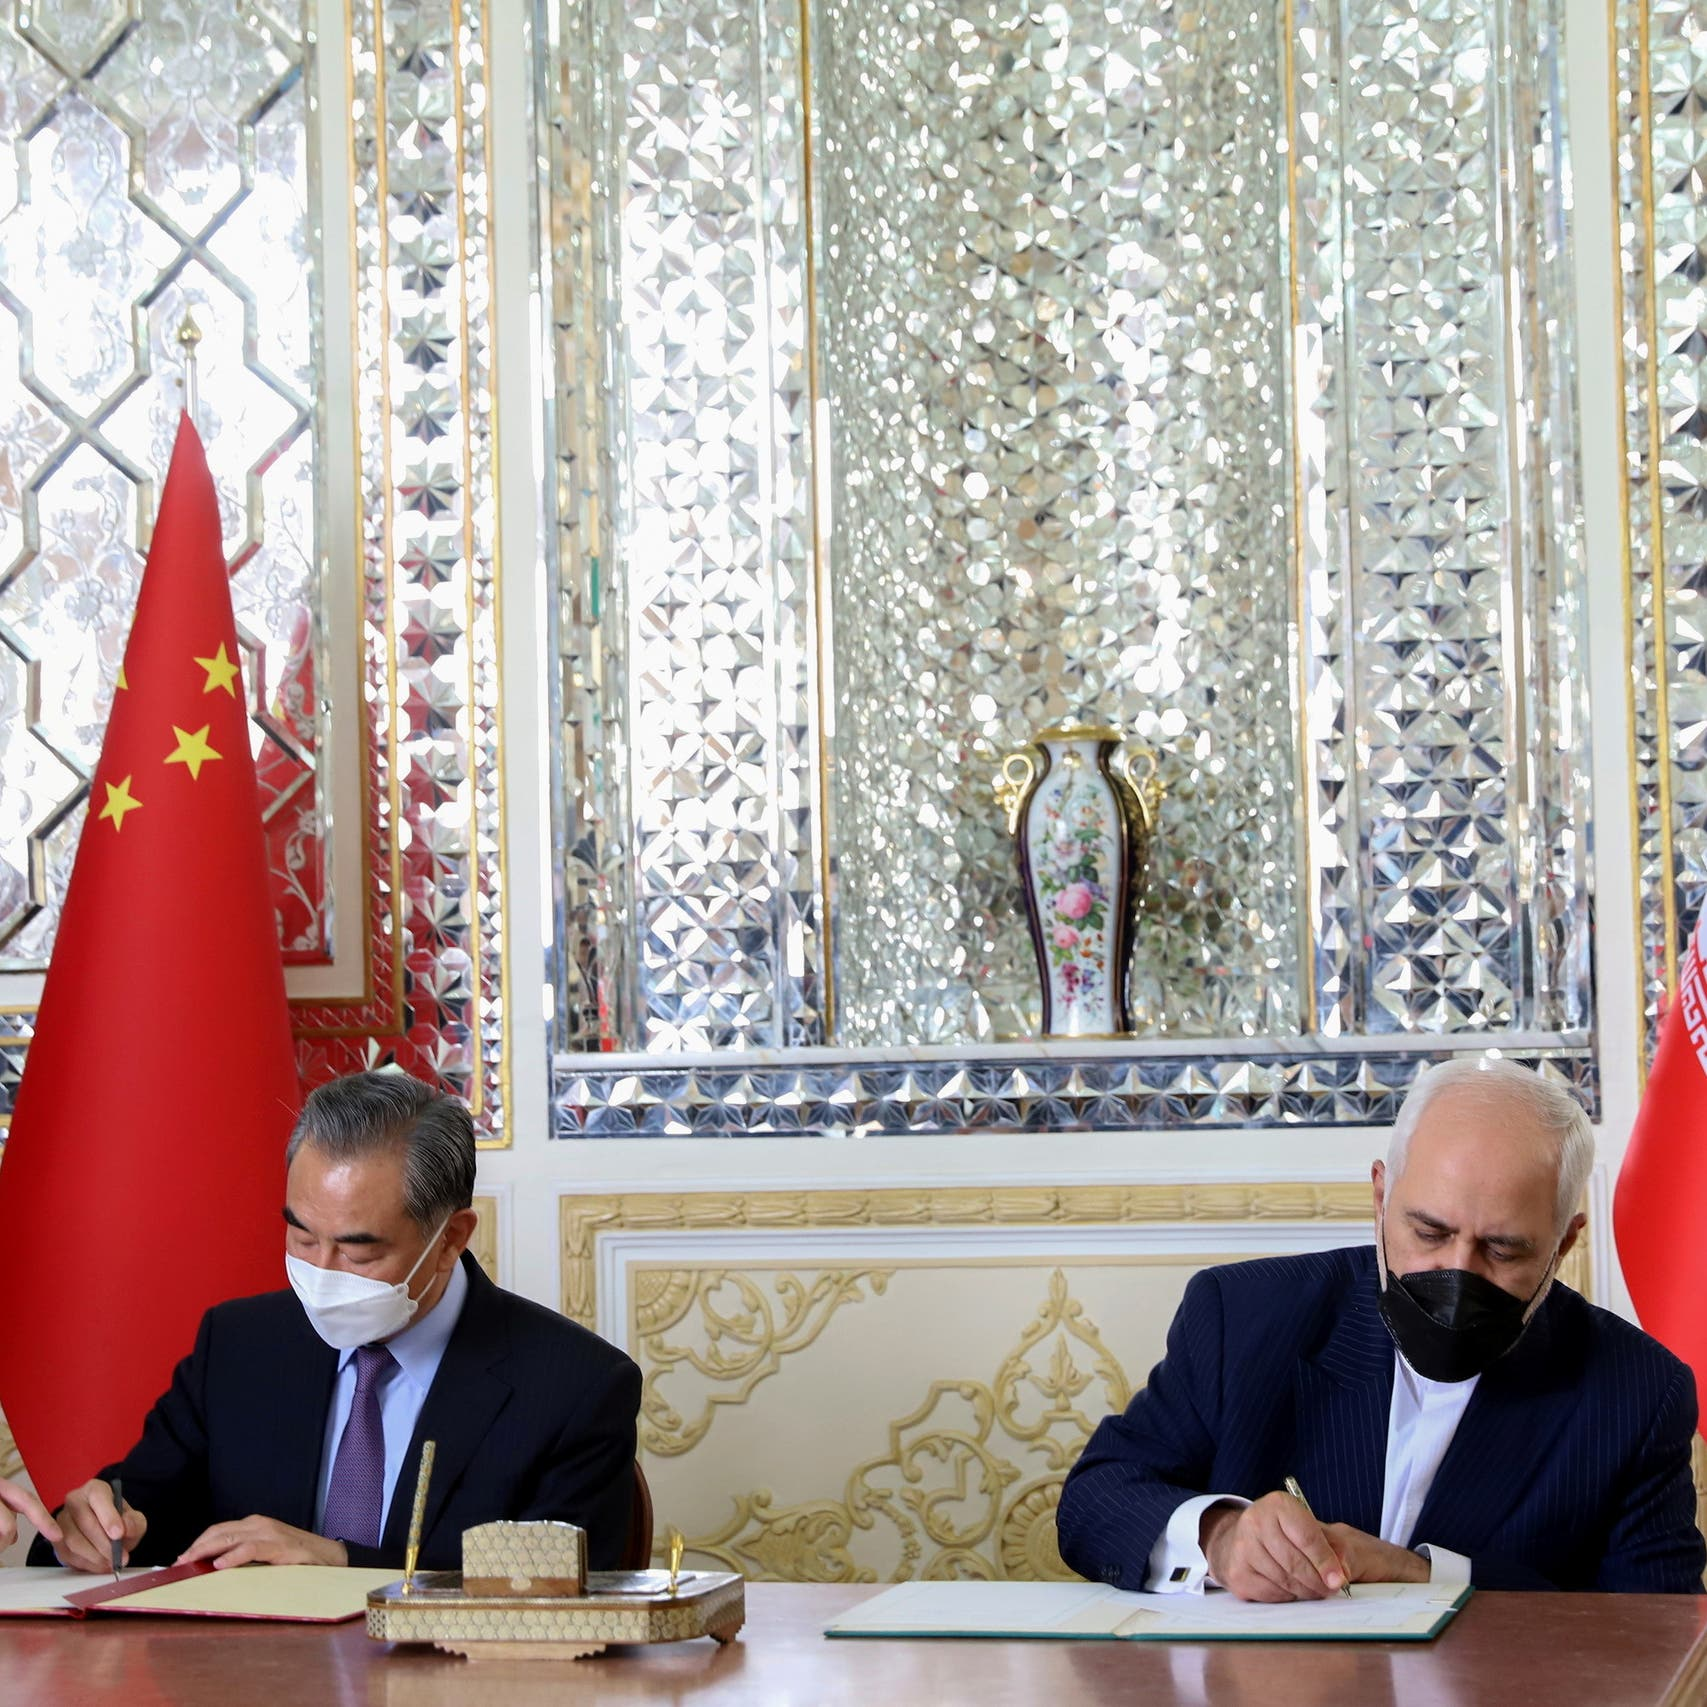 Iran turns to China with 25-year agreement